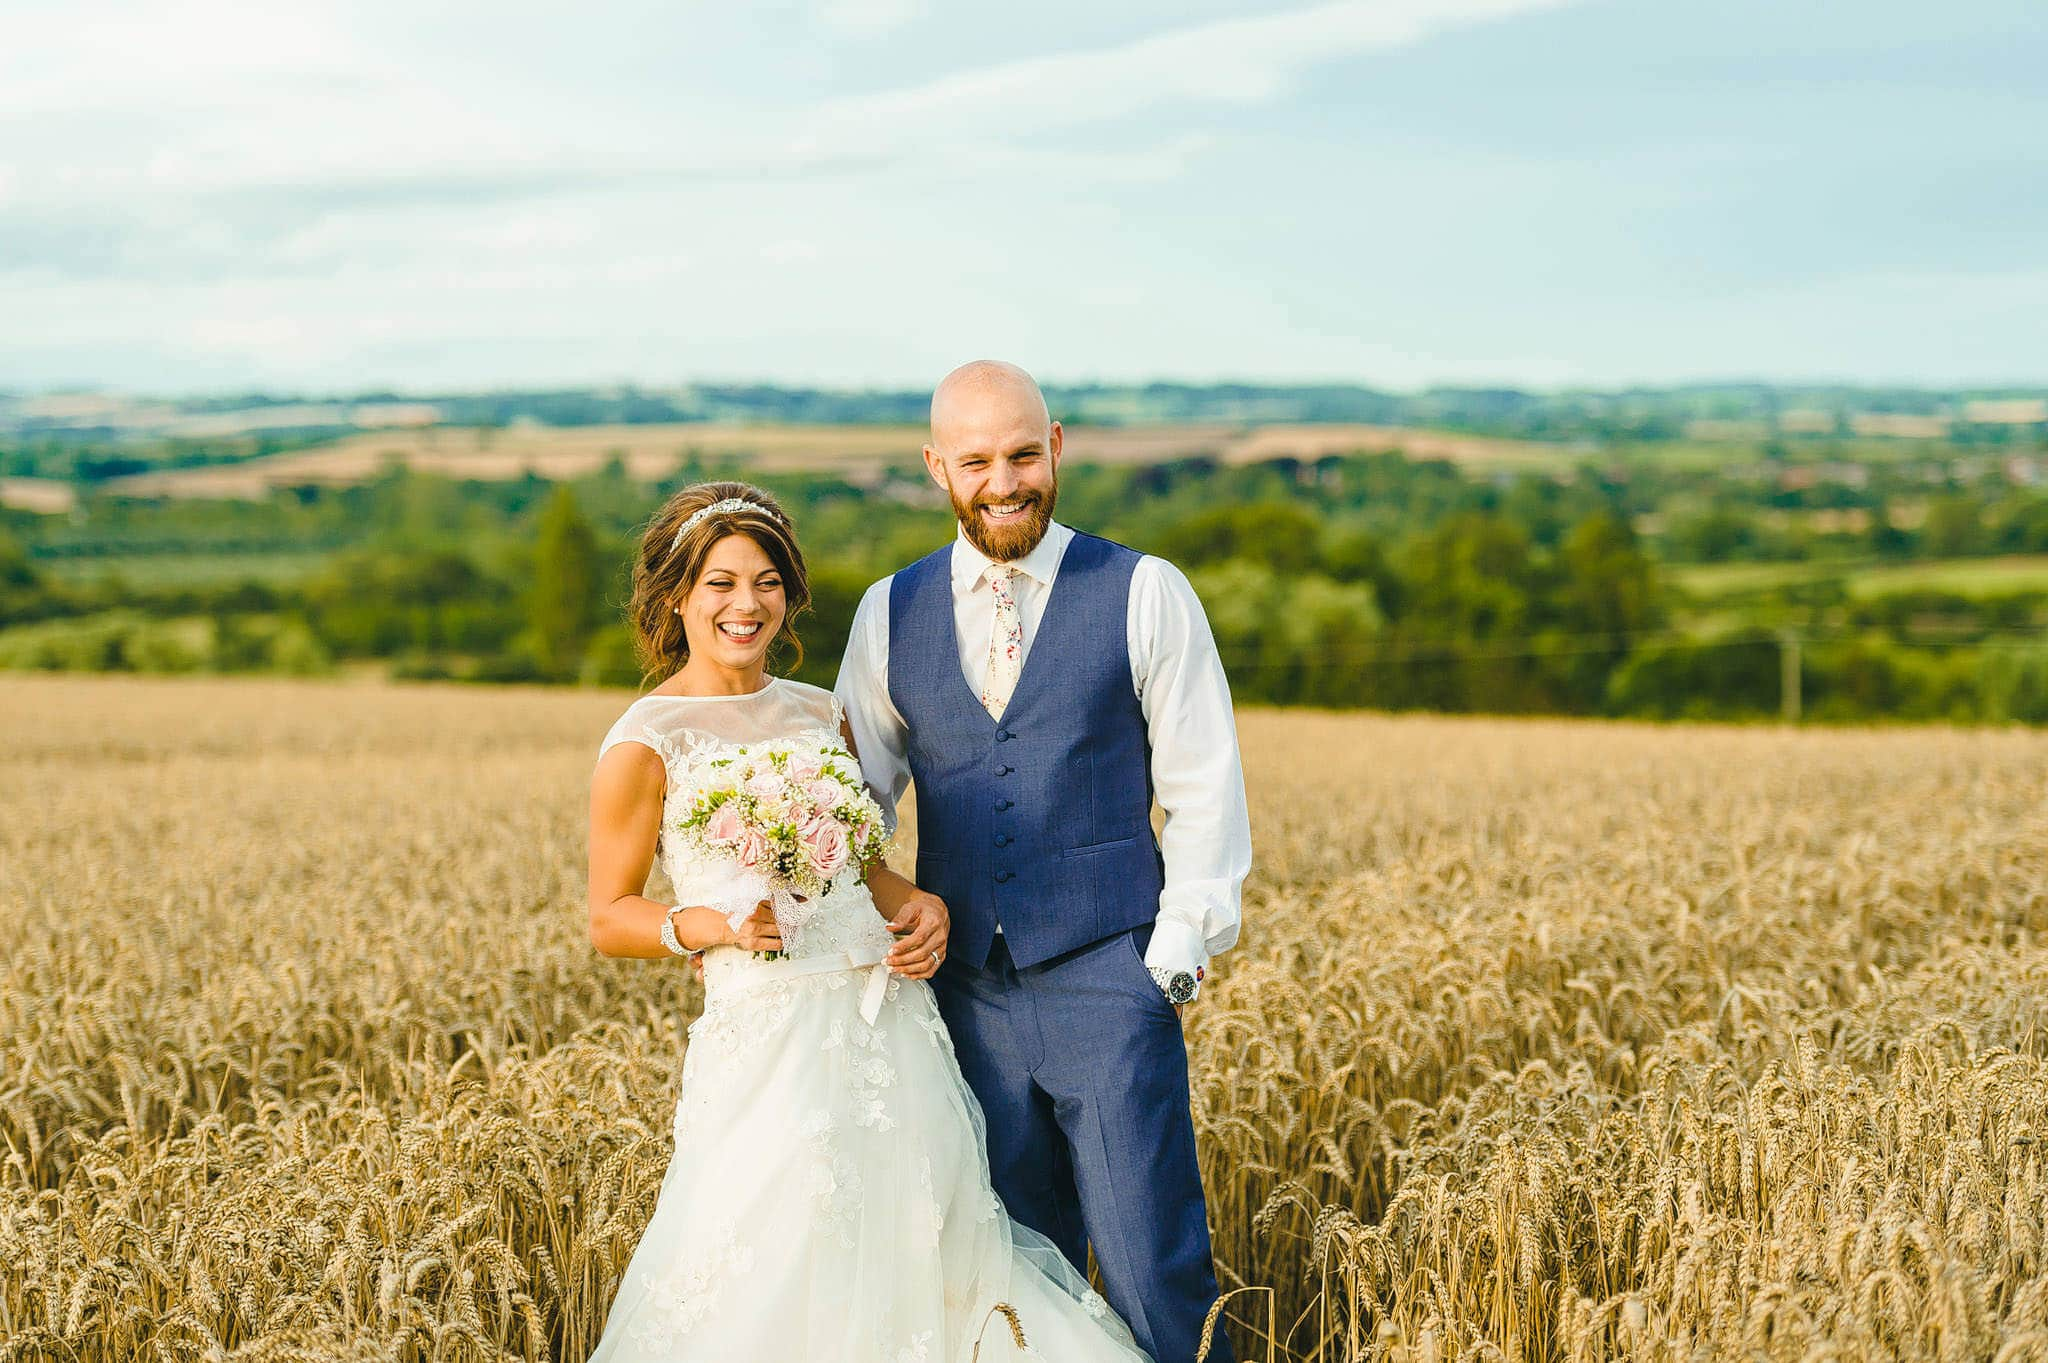 wedding photography midlands 31 - Midlands wedding photography - 2015 Review